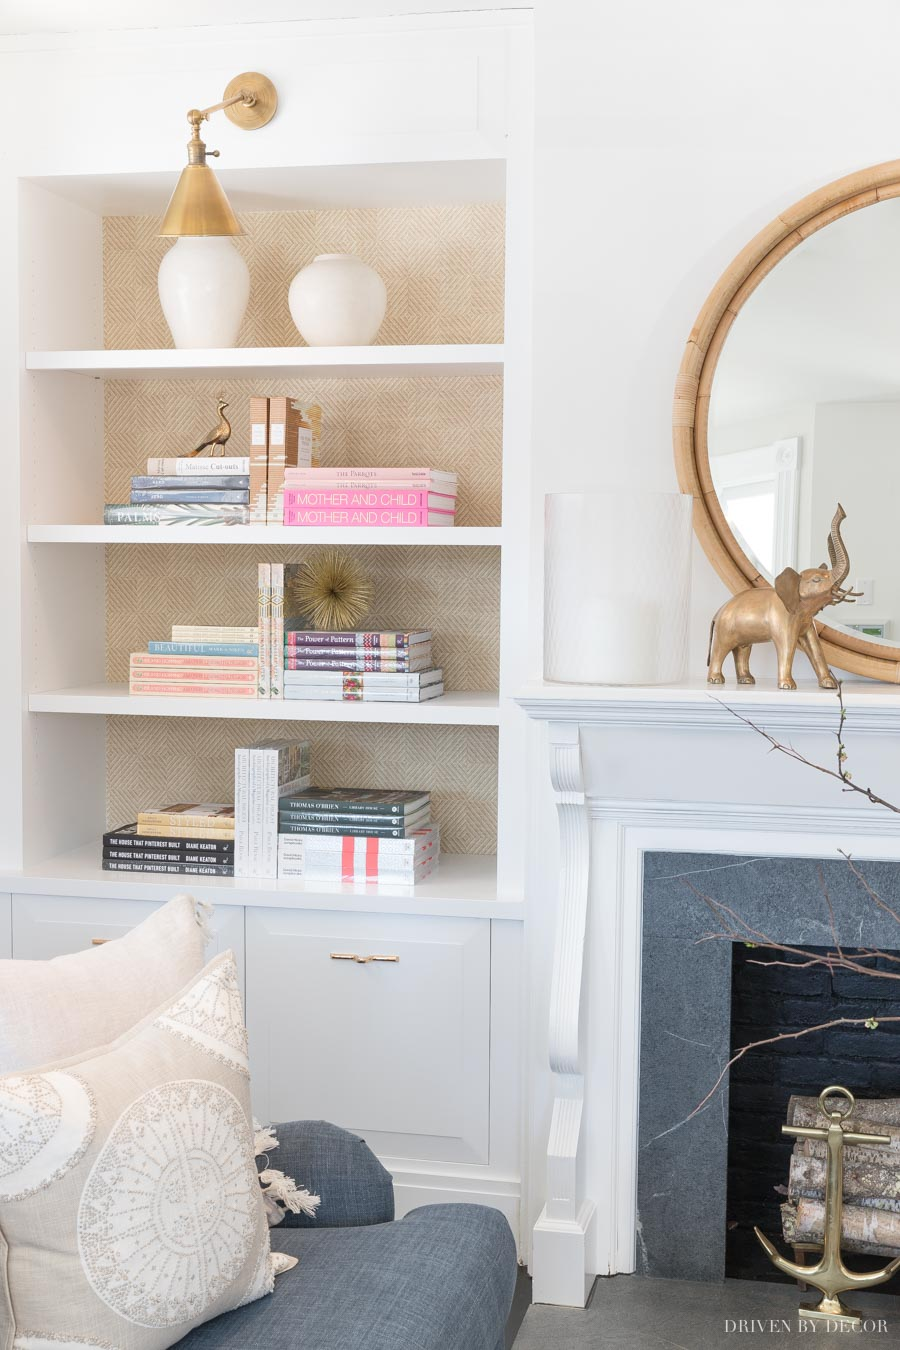 Gorgeous grasscloth wallpaper on the back of the bookcase adds so much to this space!